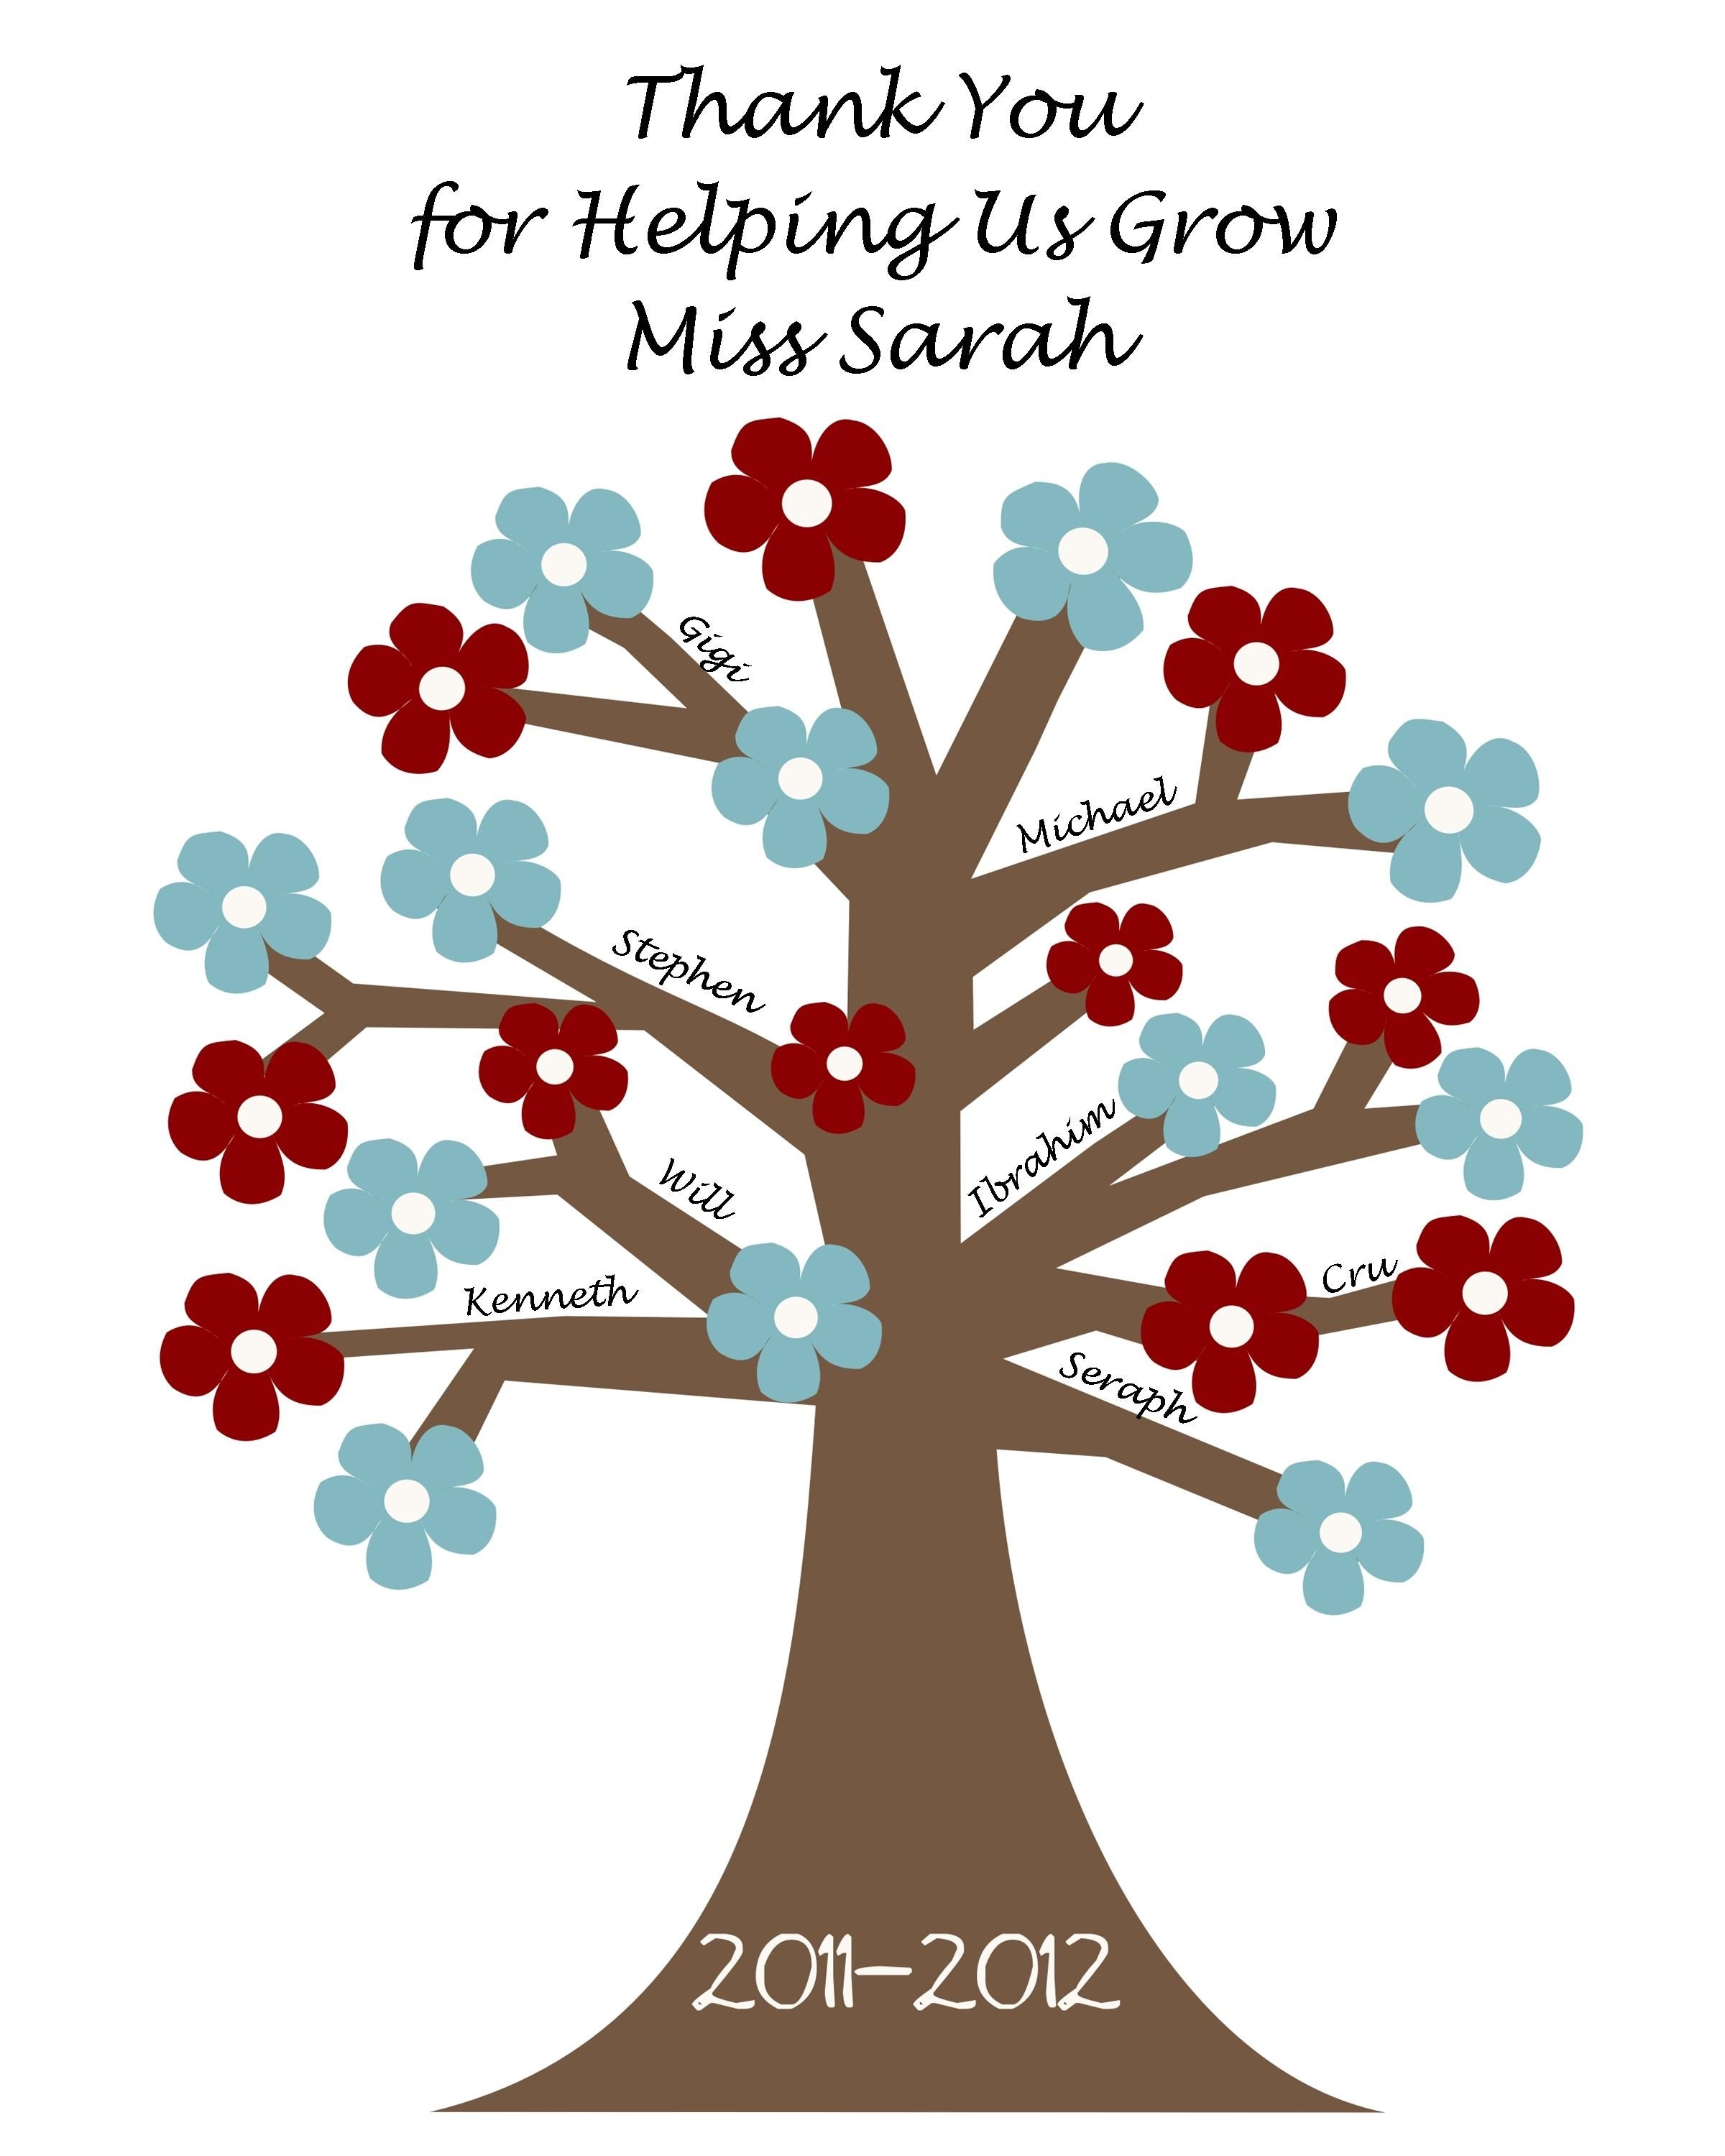 Thank You Quotes For Helping: Thank You For Helping Us Grow Tree